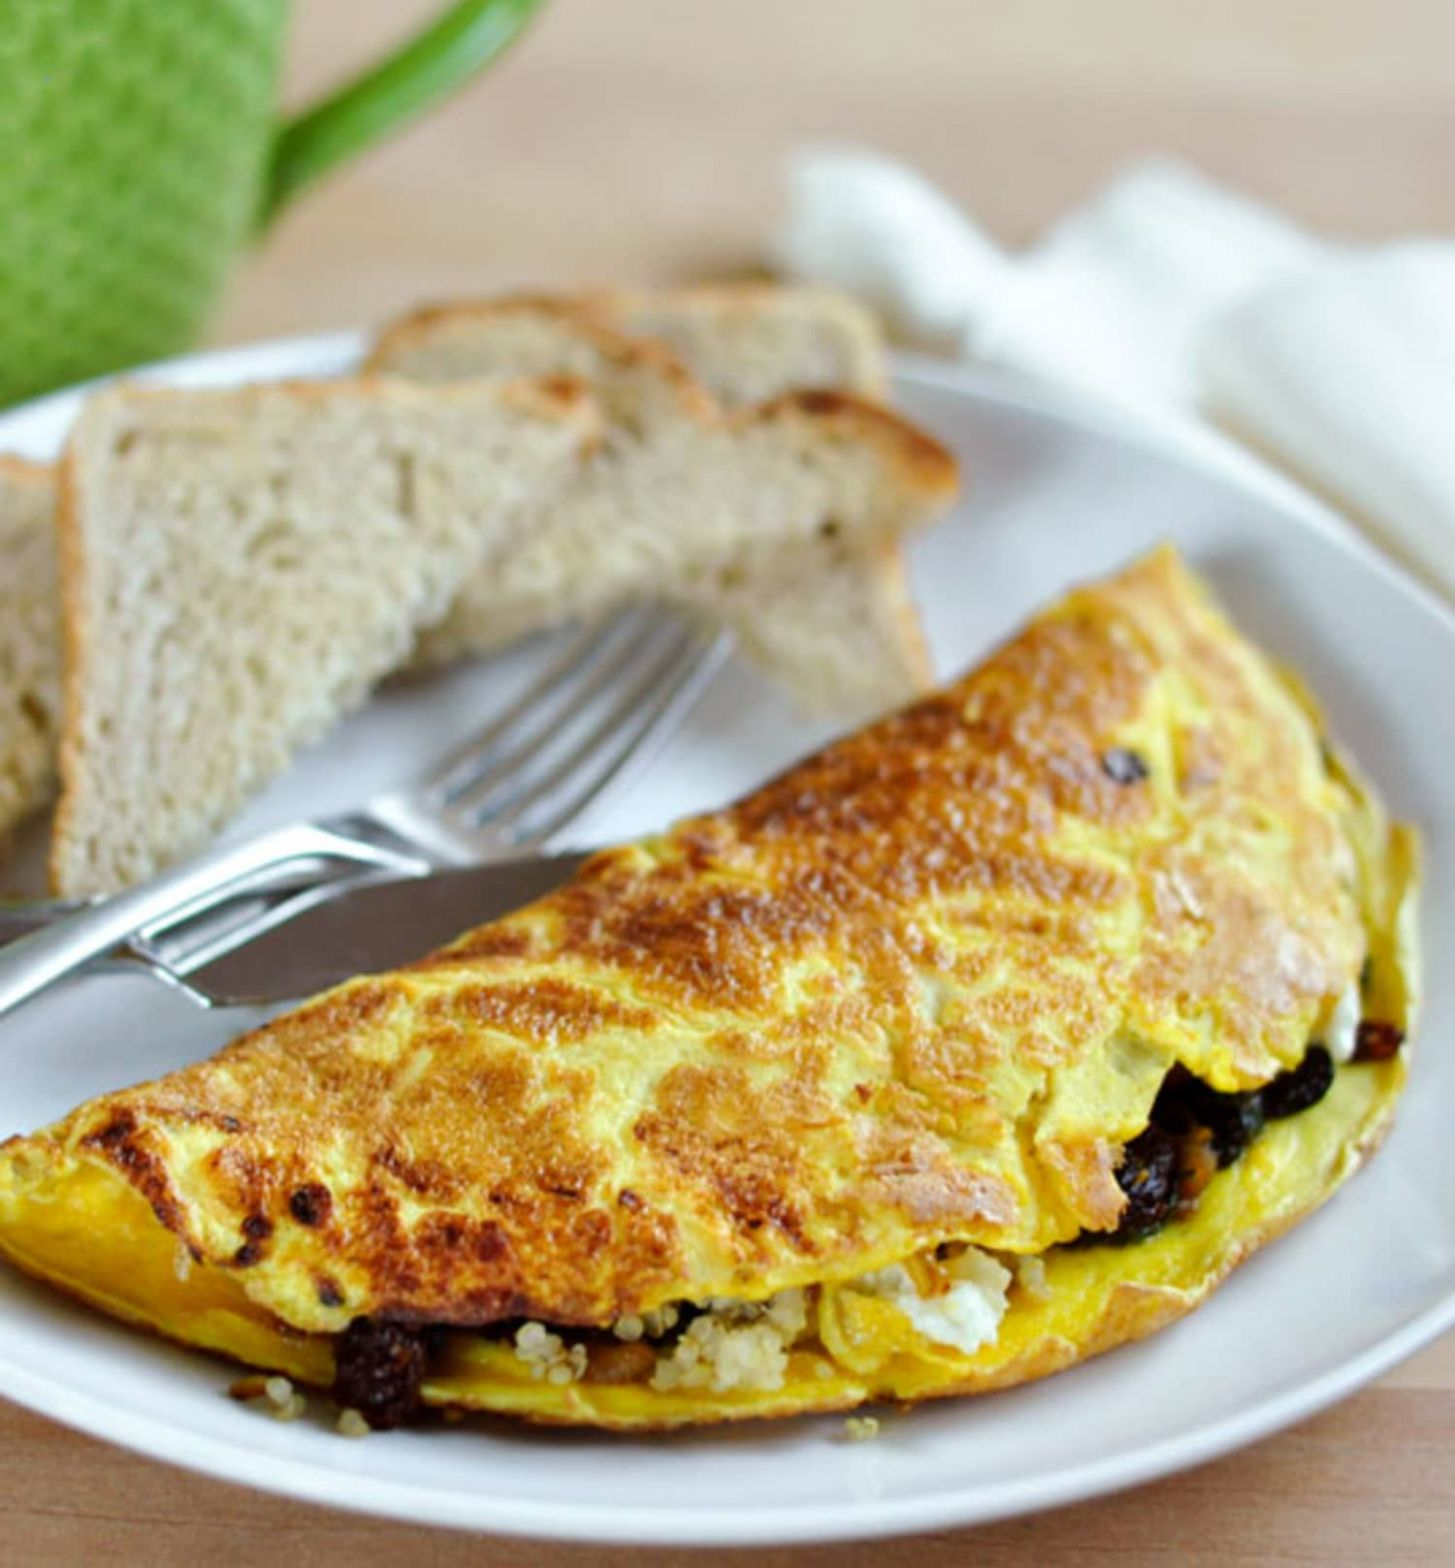 9-Egg Omelet with Quinoa, Sun-Dried Tomatoes, Spinach, and Goat Cheese - Recipes Egg Omelet